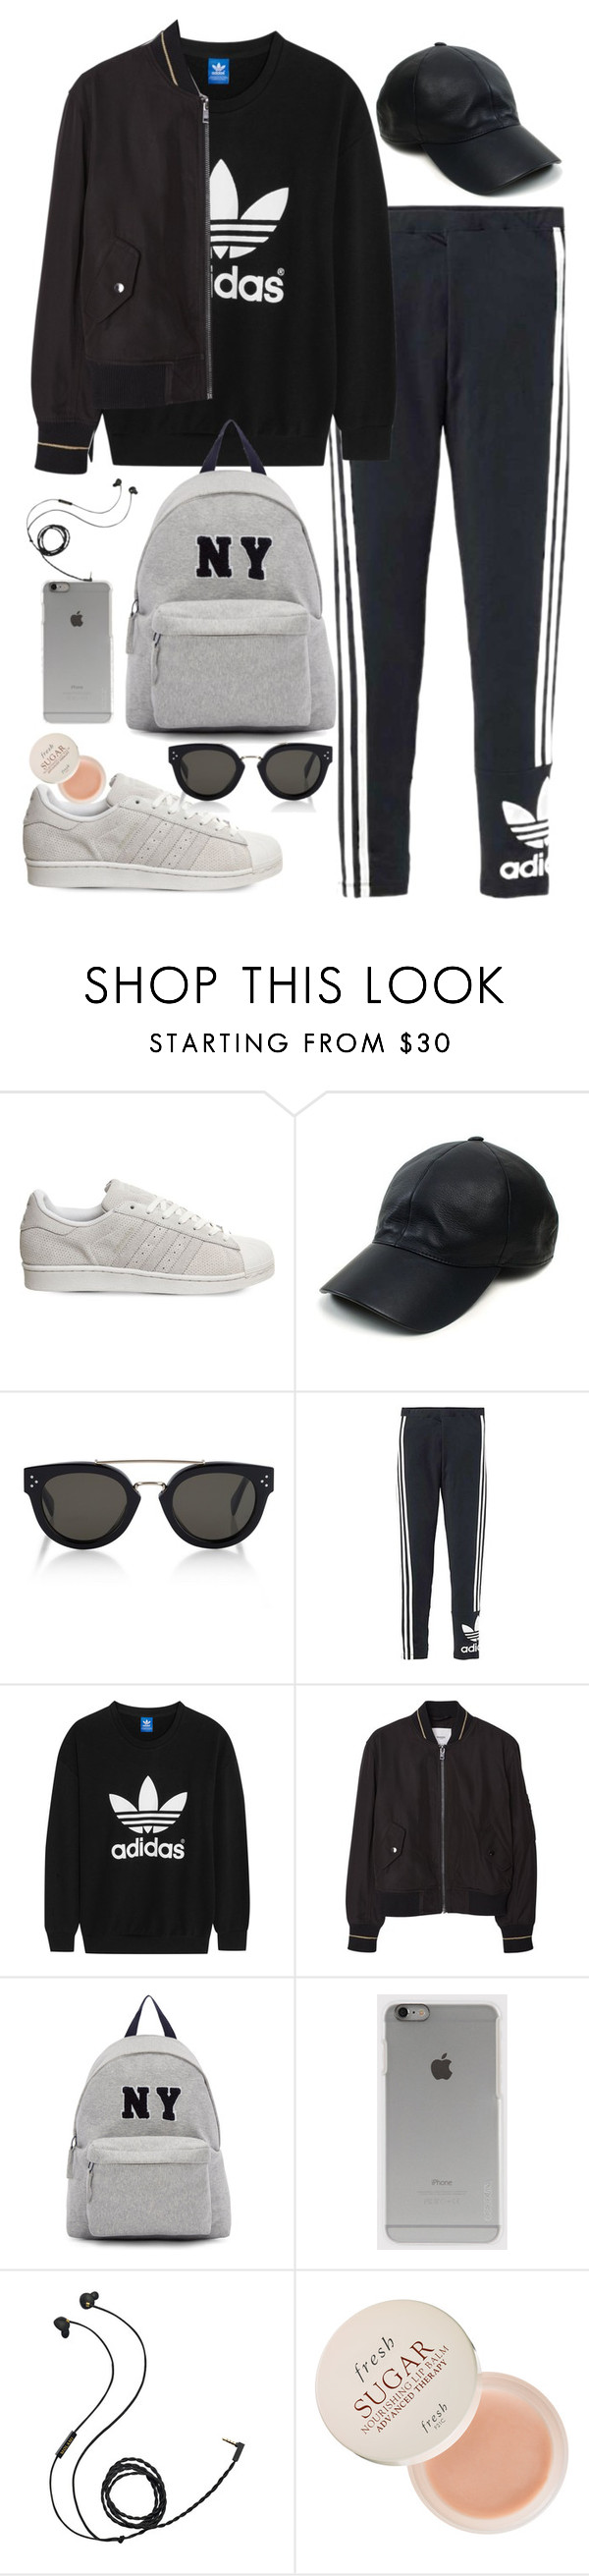 """""""Untitled #477"""" by flawedparadise ❤ liked on Polyvore featuring adidas, Vianel, CÉLINE, adidas Originals, MANGO, Joshua's, Incase, Molami, Fresh and women's clothing"""